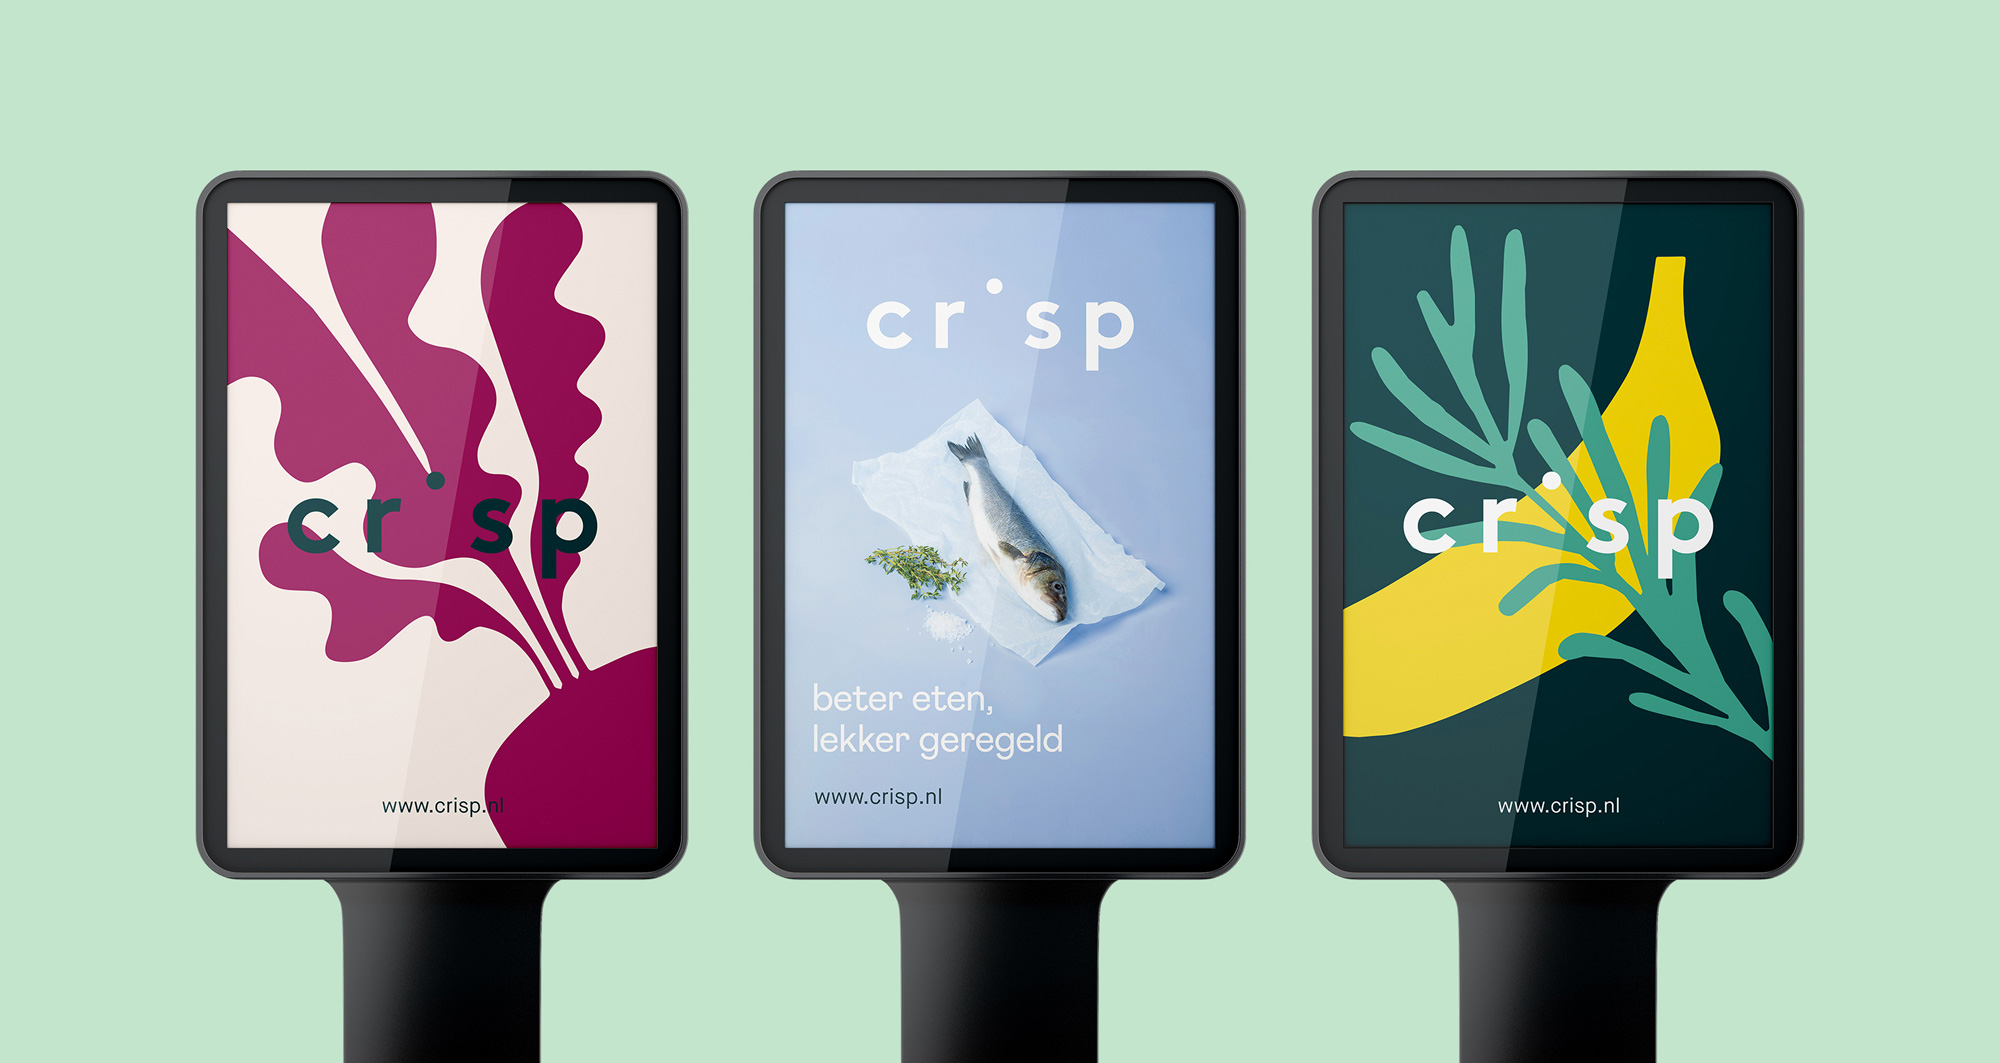 New Logo and Identity for Crisp by Studio Kraftwerk